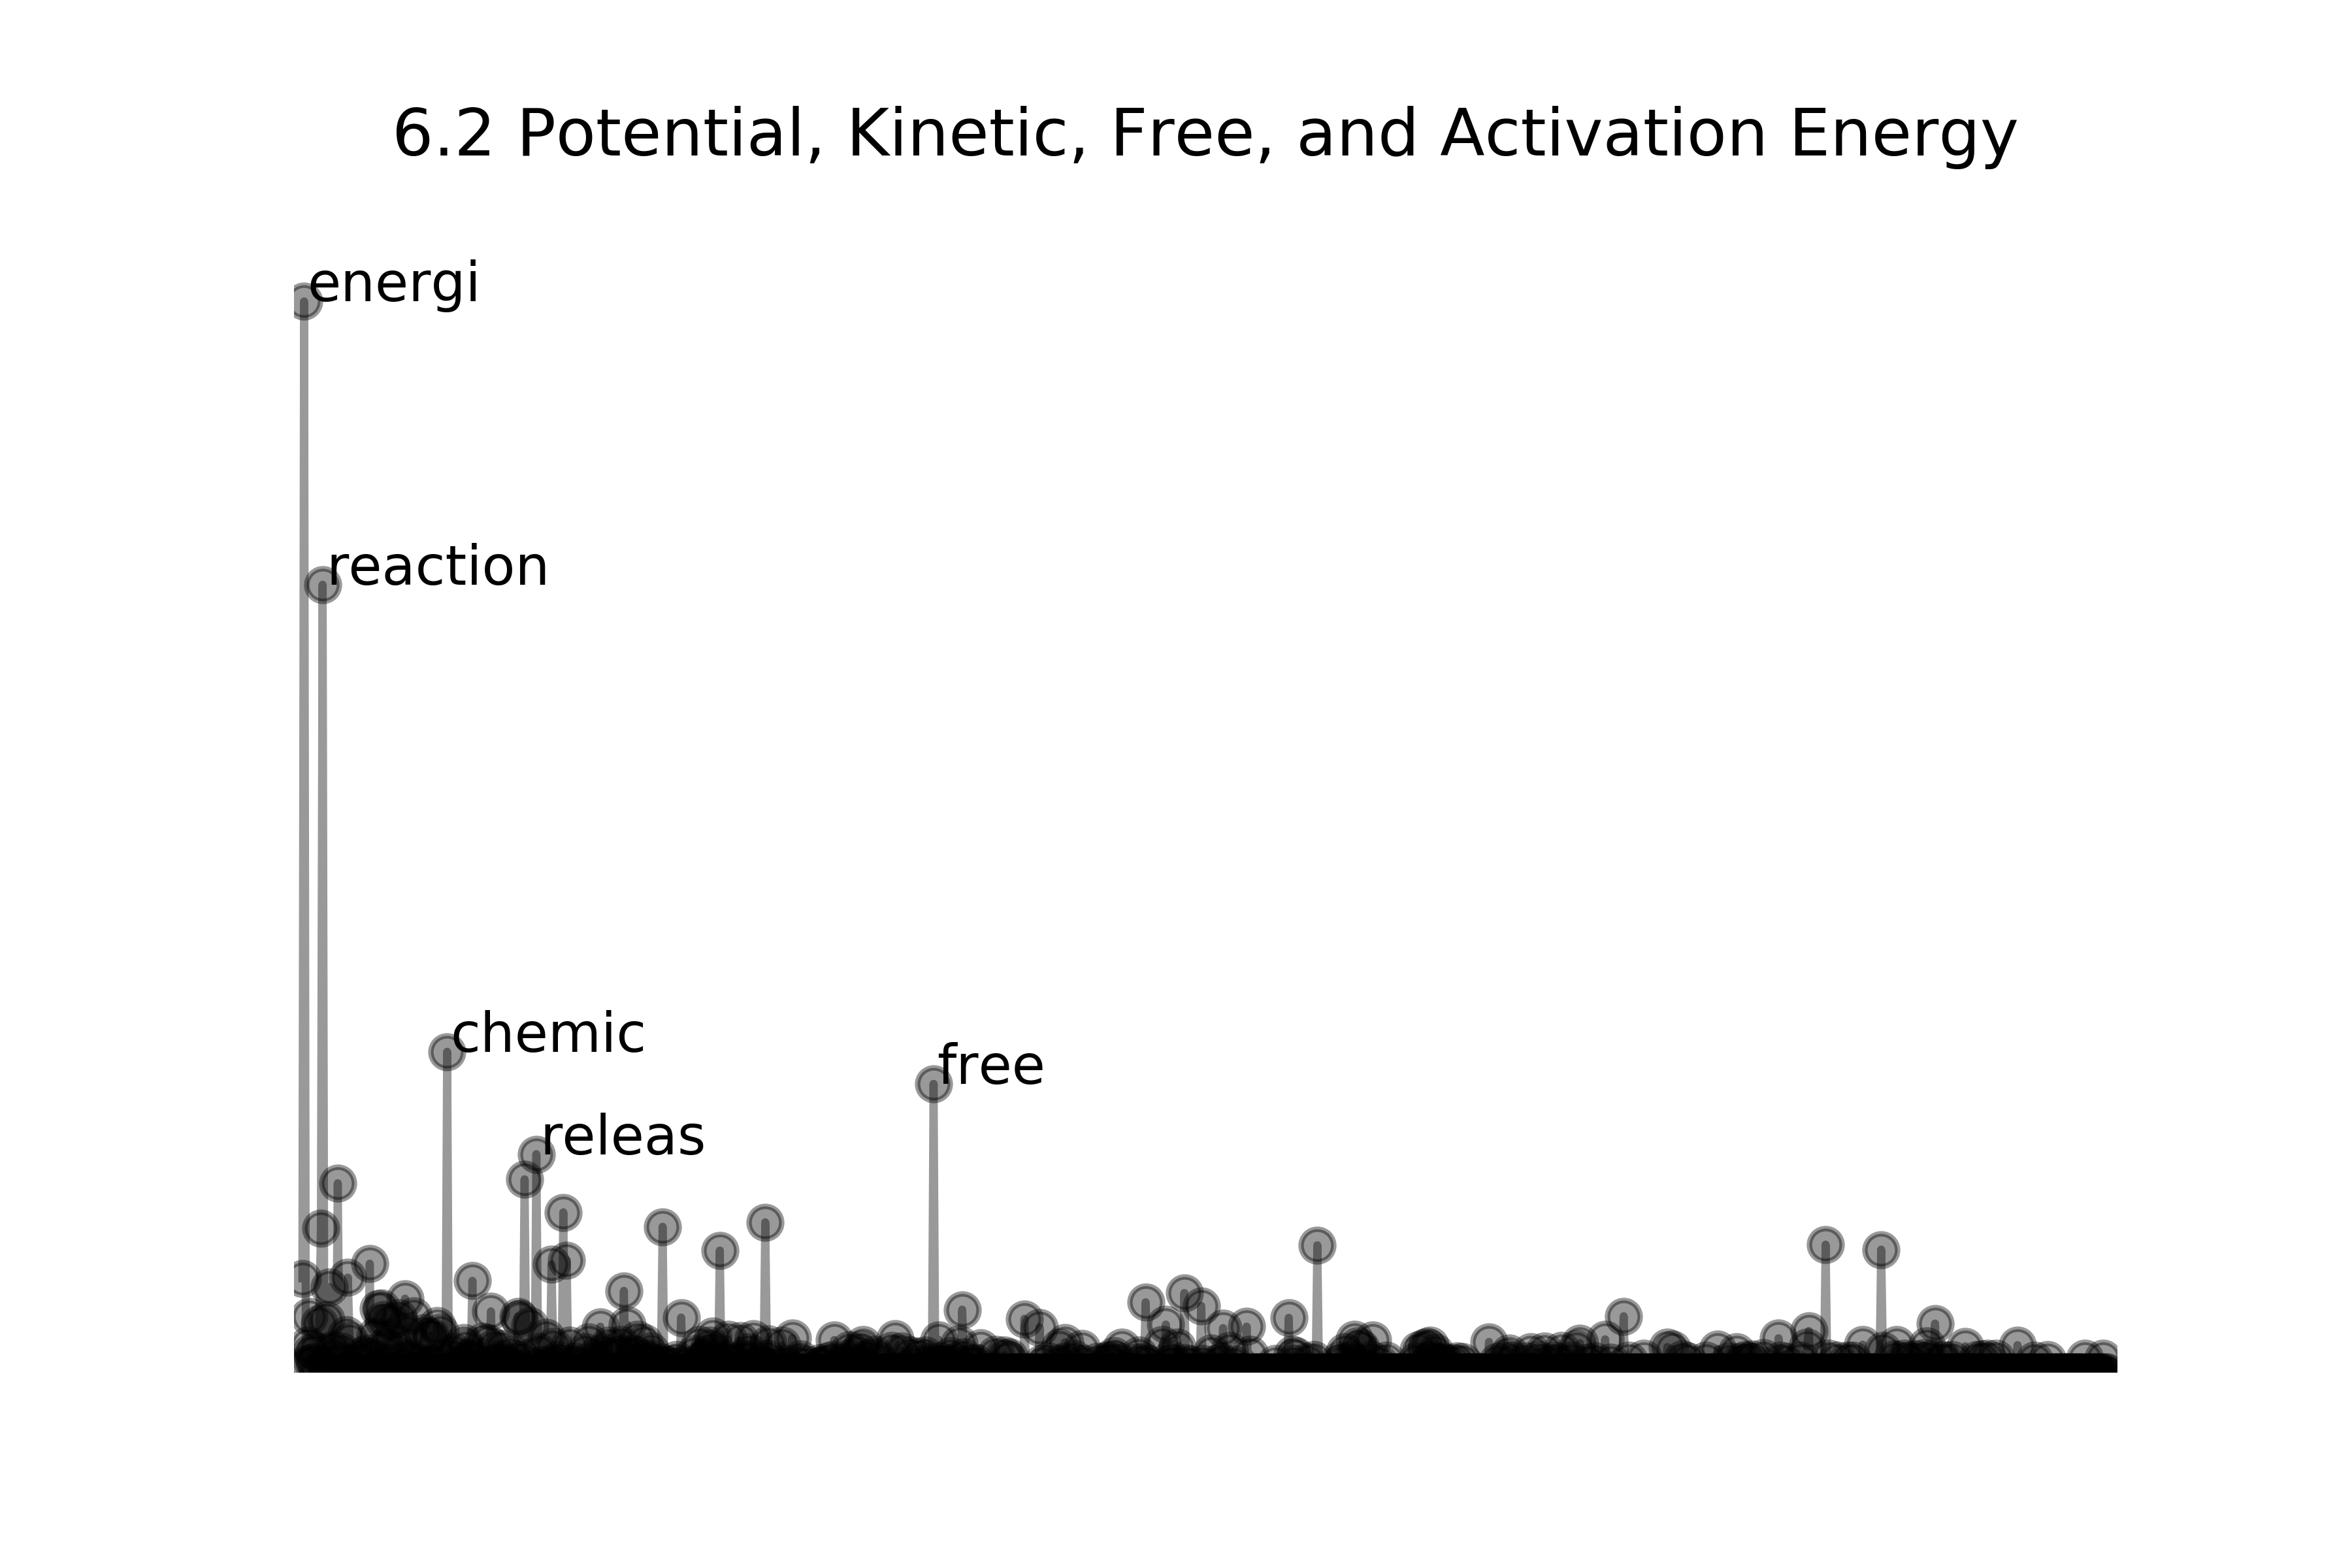 Sample CHEM section graph, showing 'energi' 'reaction' 'chemic' and 'free' as prominent.